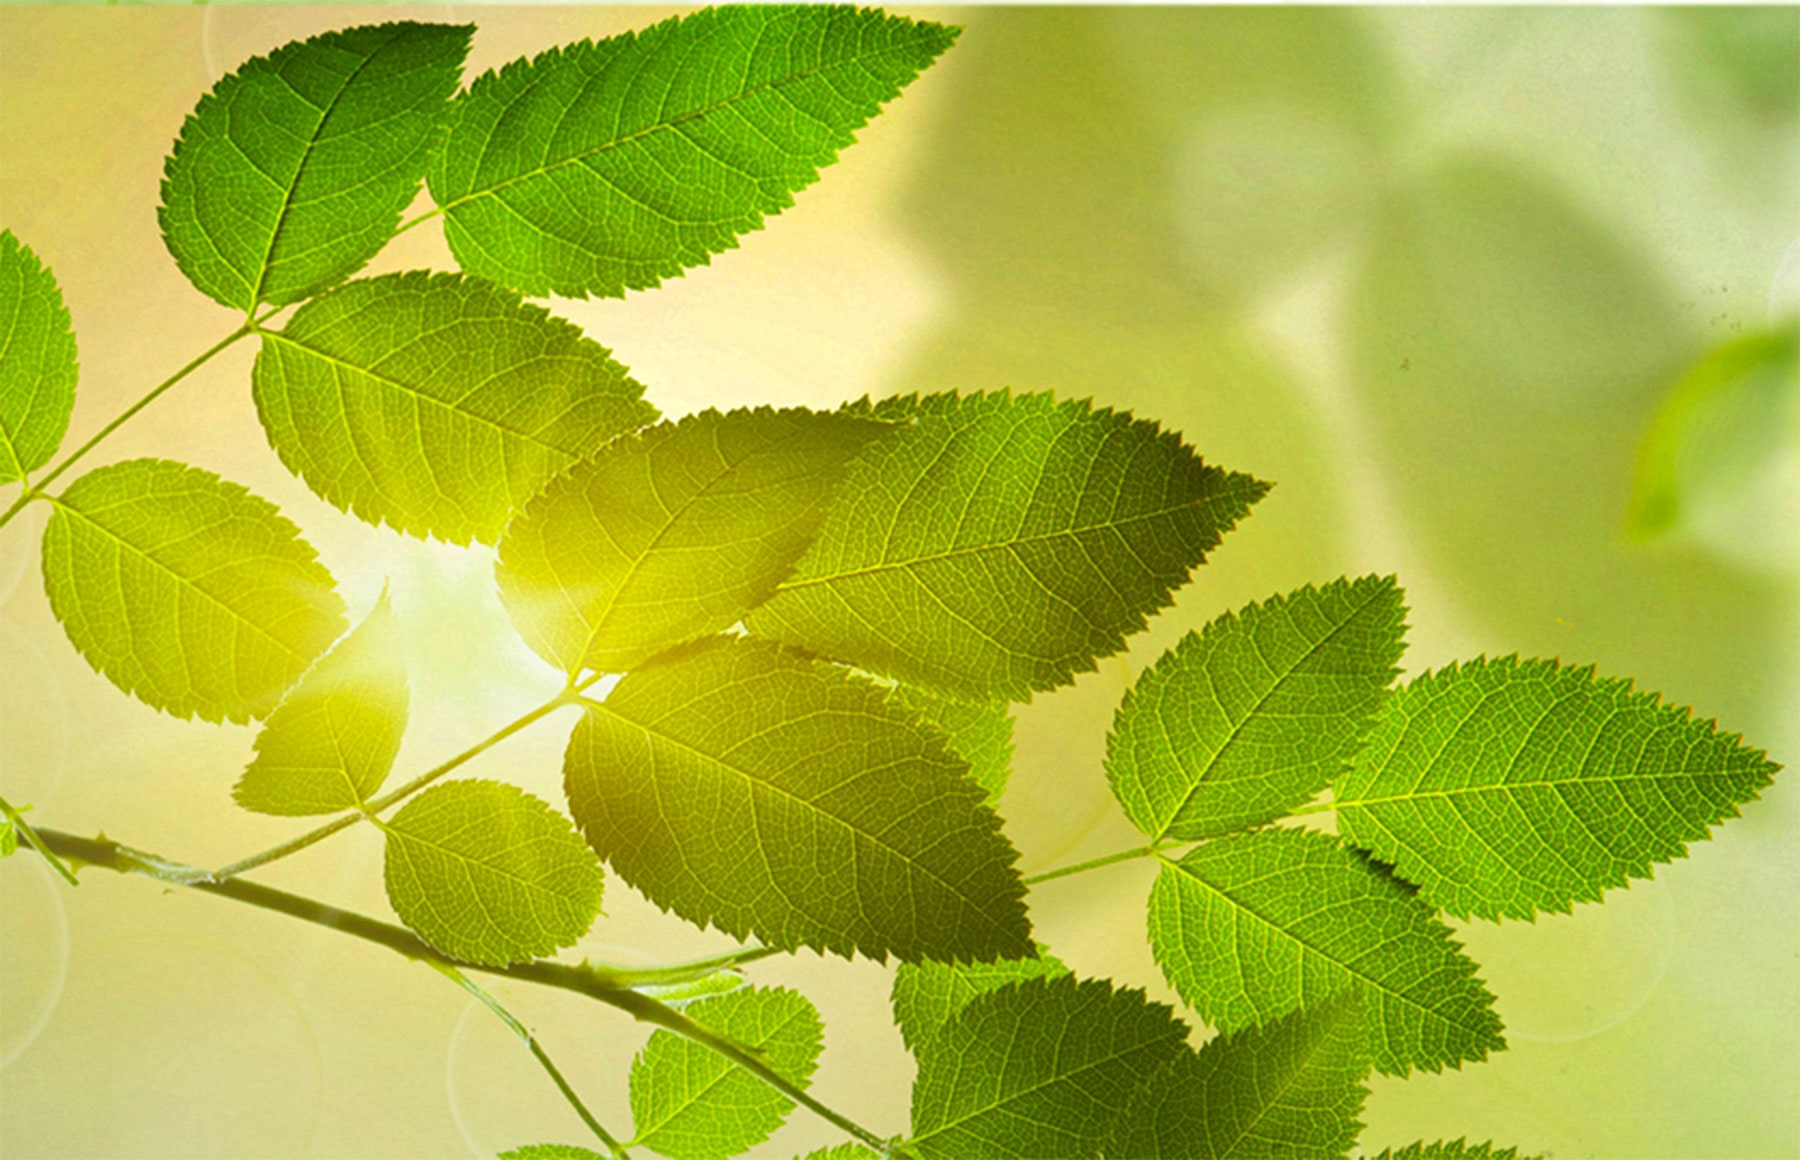 Sunlight and green leaves